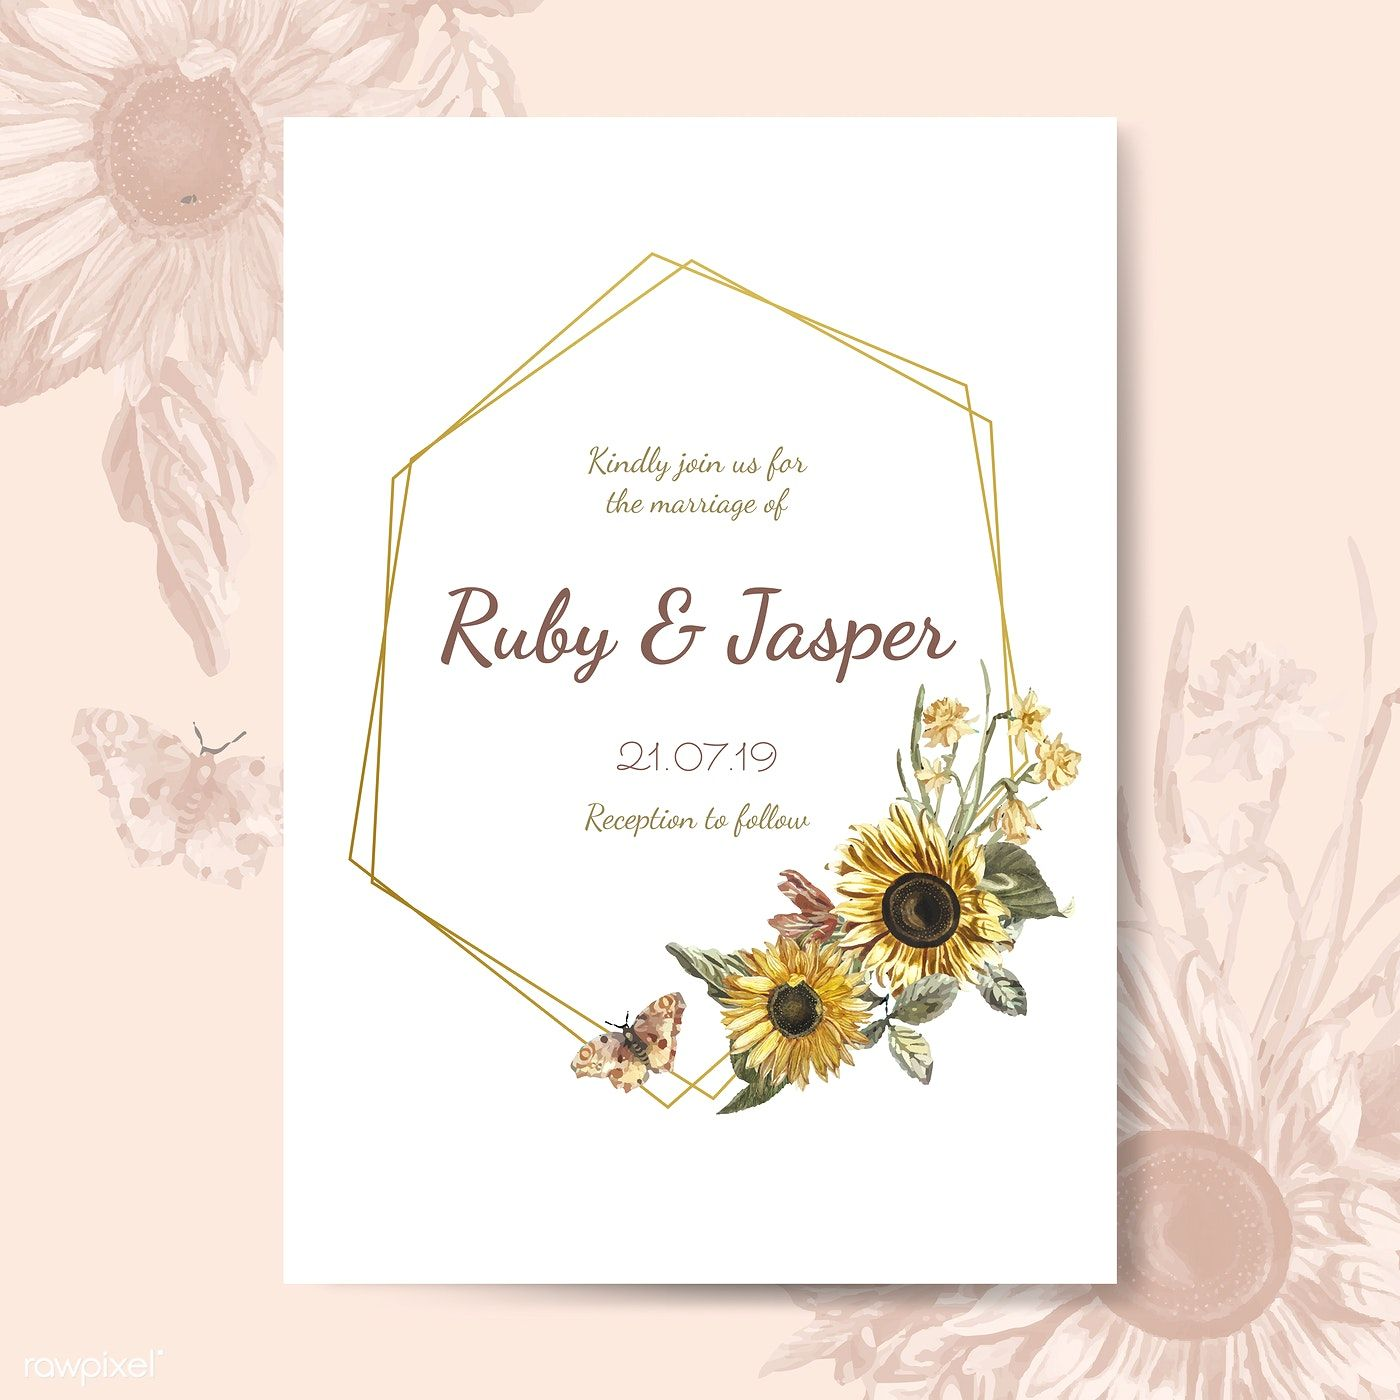 Wedding invitation card mockup vector free image by